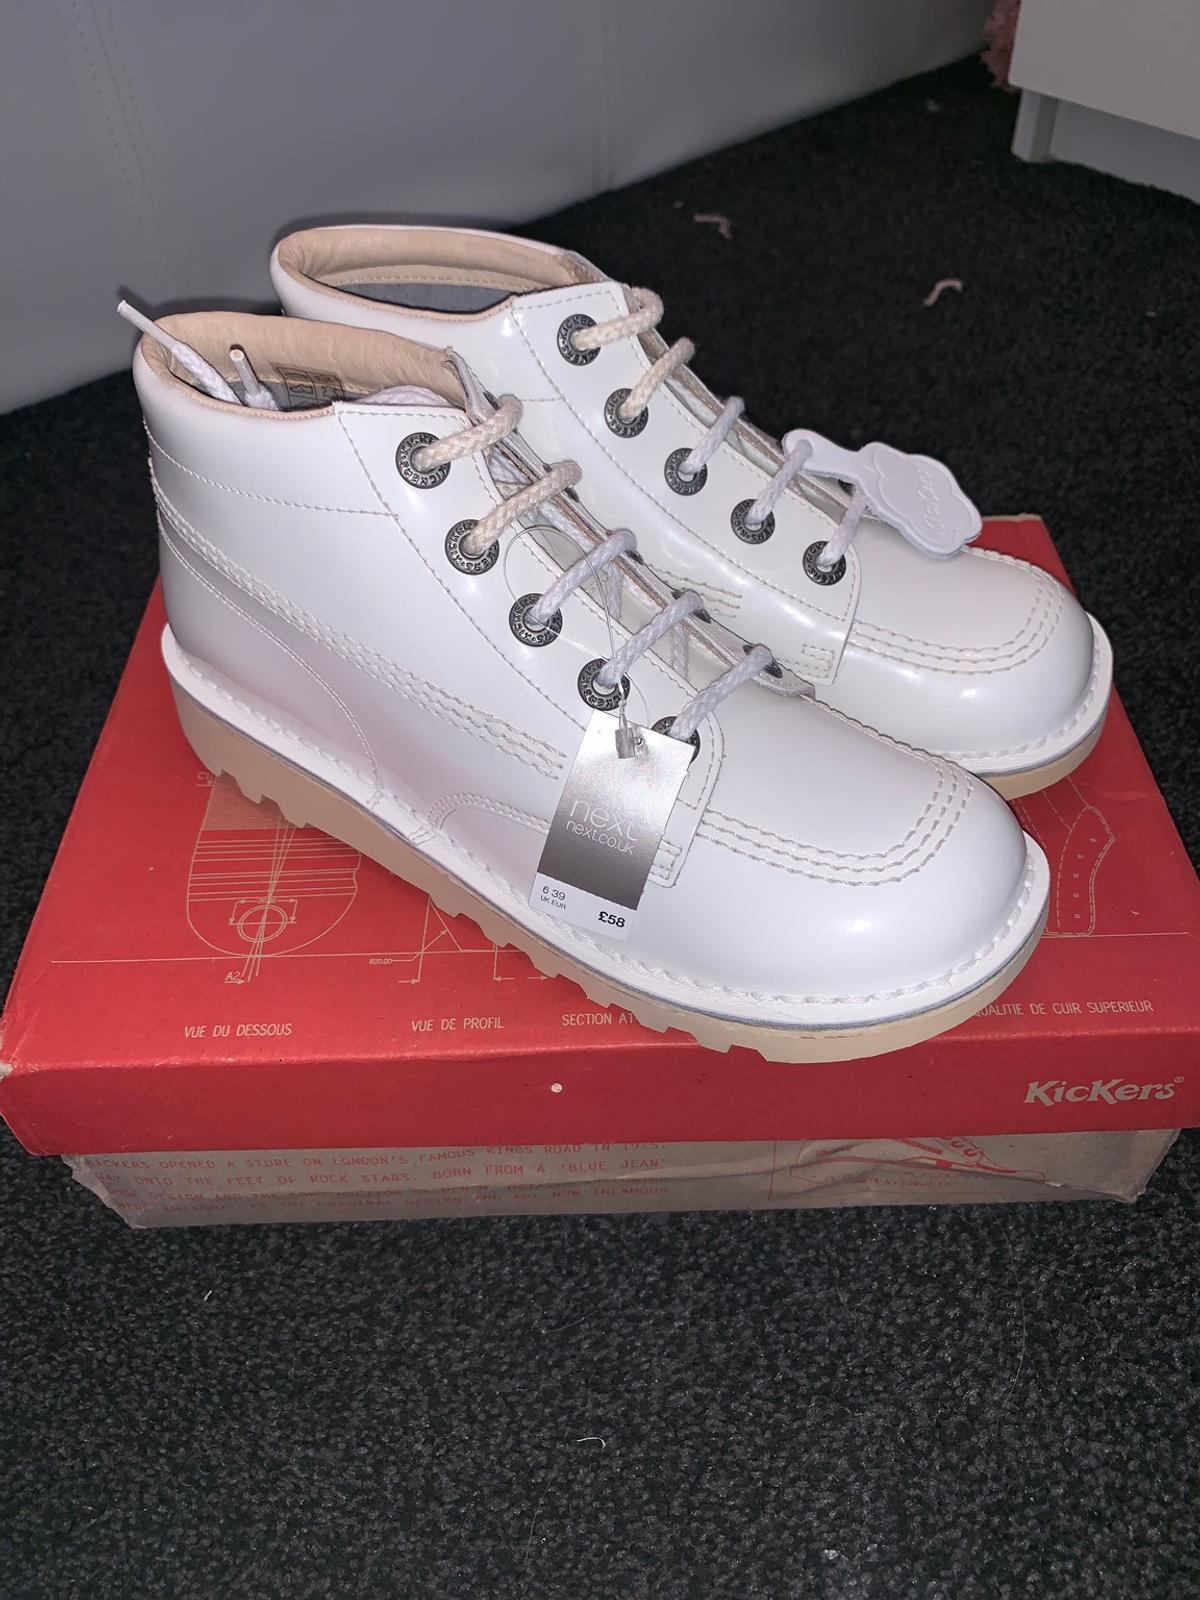 WHITE BRAND NEW KICKERS STILL WITH TAGS SIZE 6